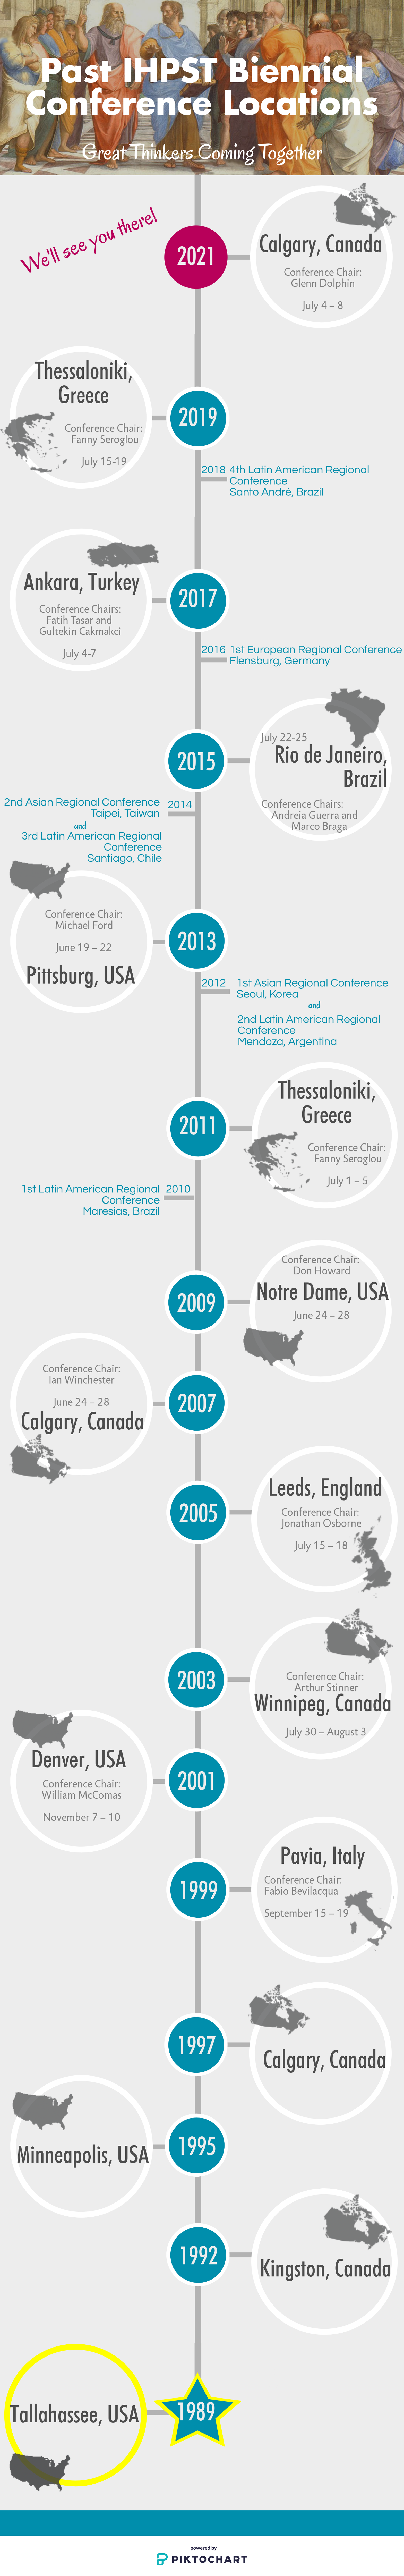 ihpst past conferences as of 2019